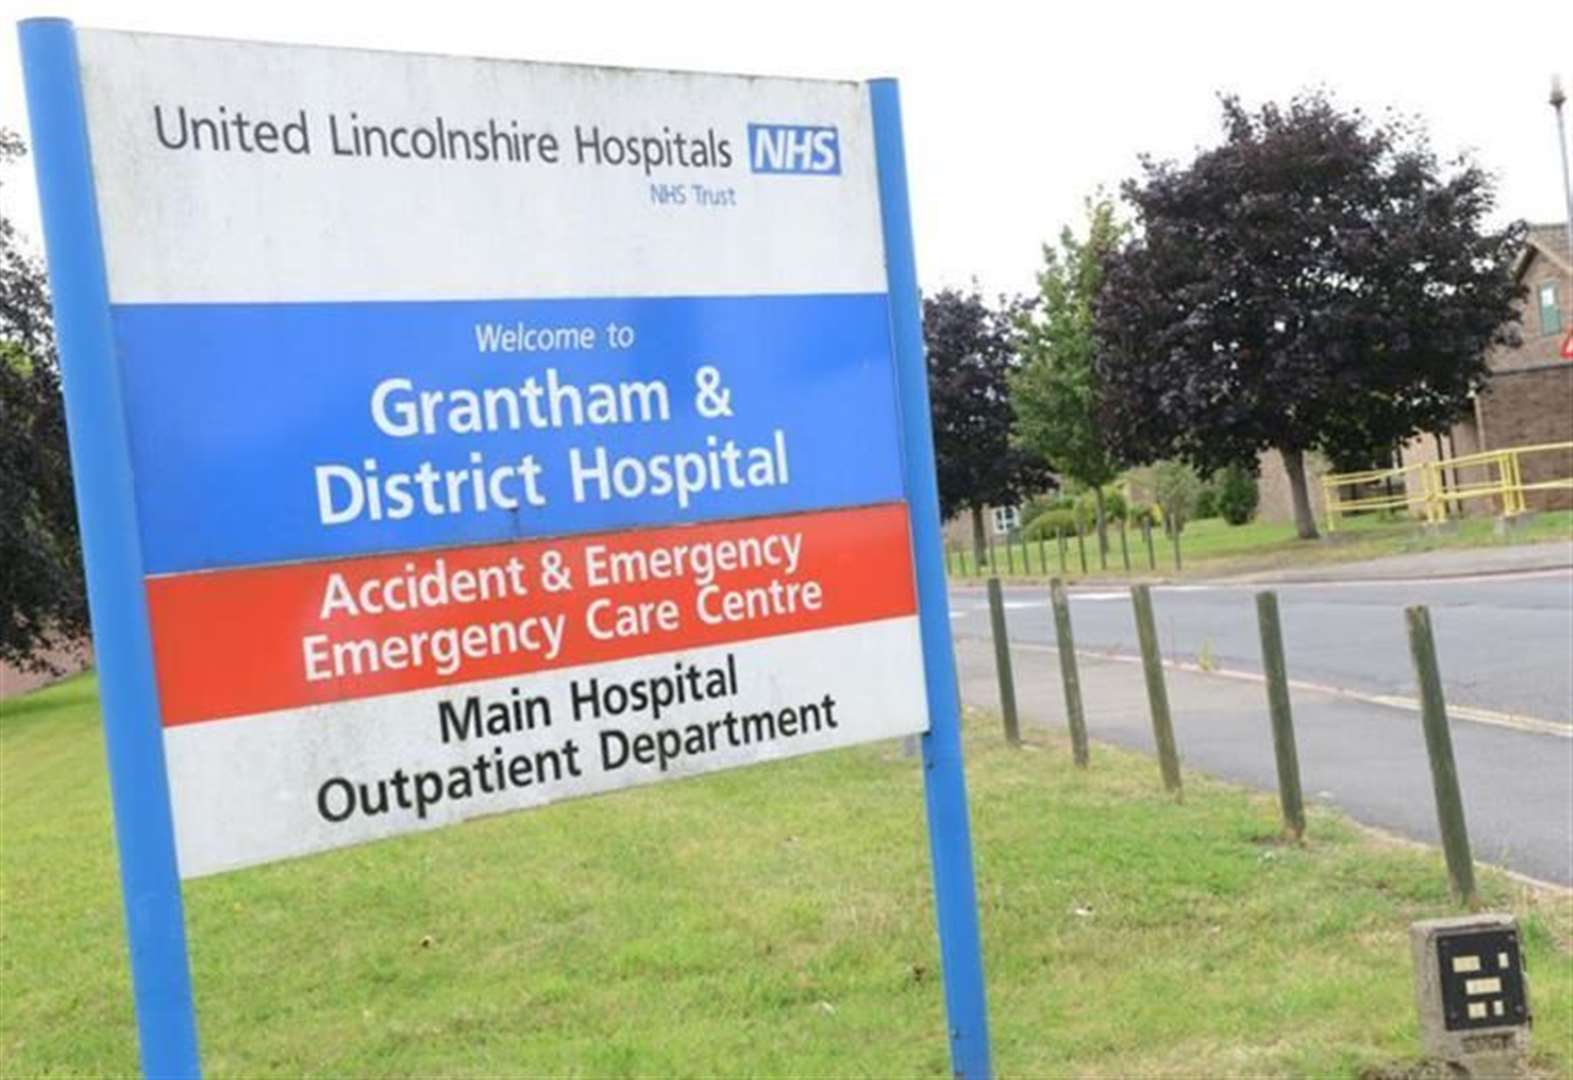 Maintenance bill for Grantham and other Lincolnshire hospitals is £236 million and rising